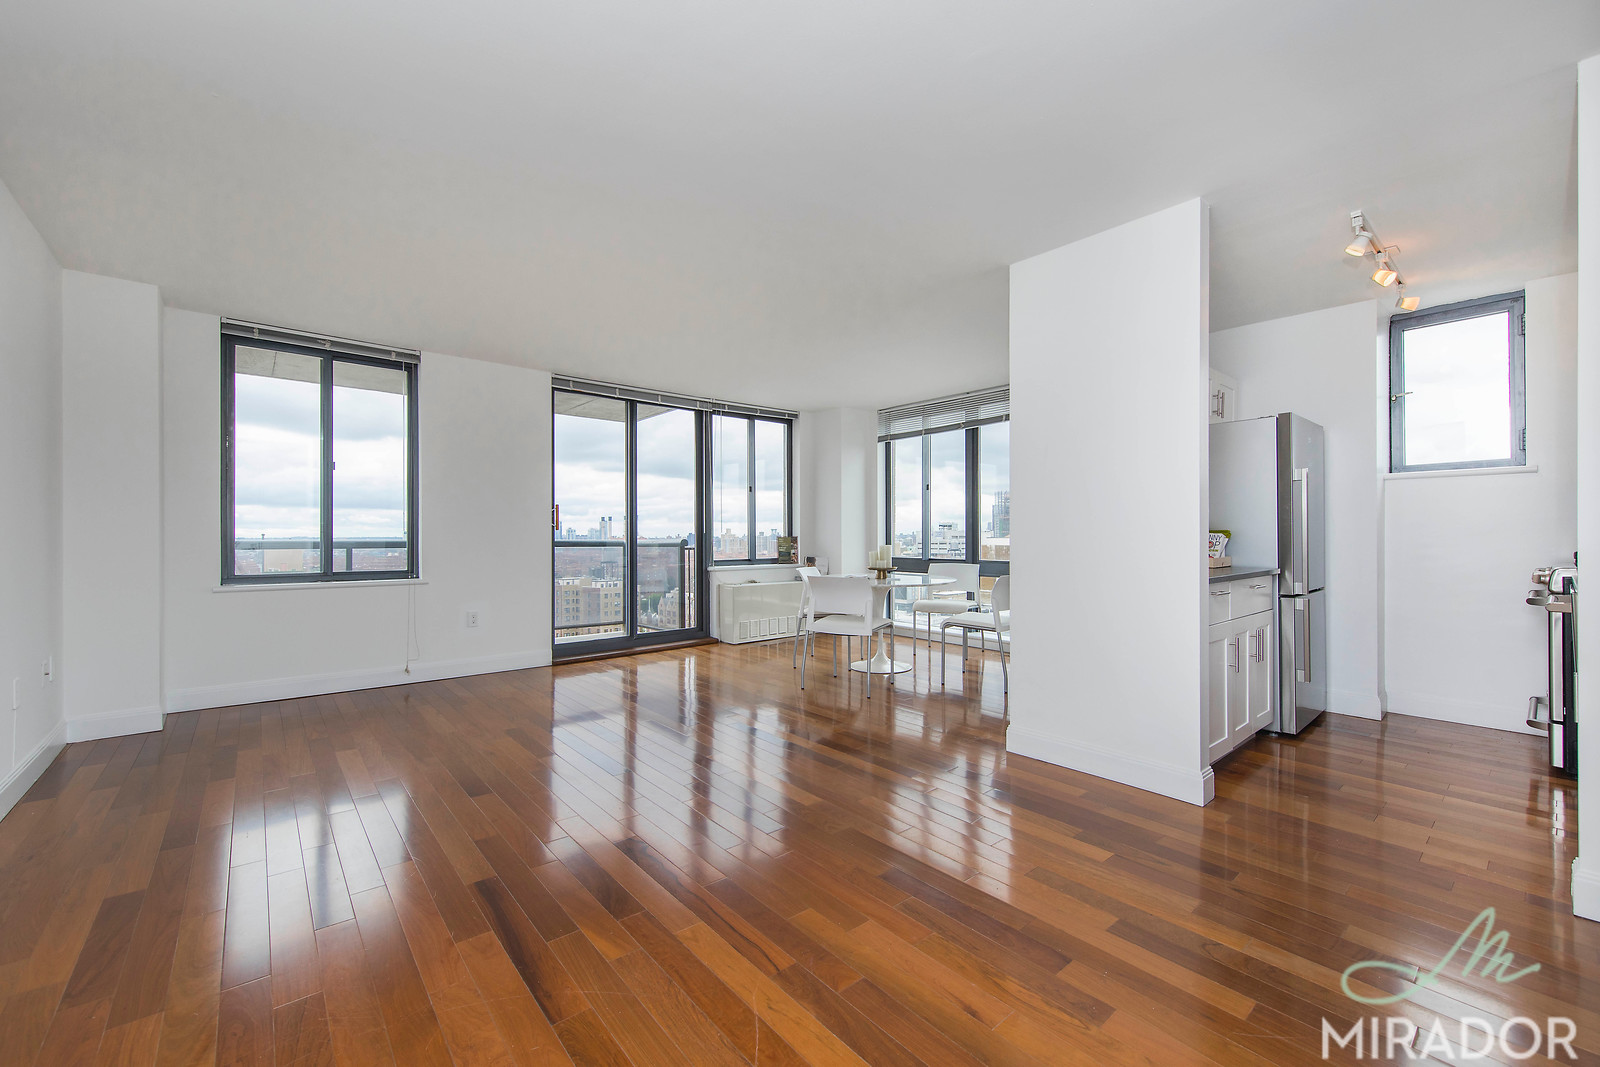 290 3rd Avenue, Apt 24C, Manhattan, New York 10010